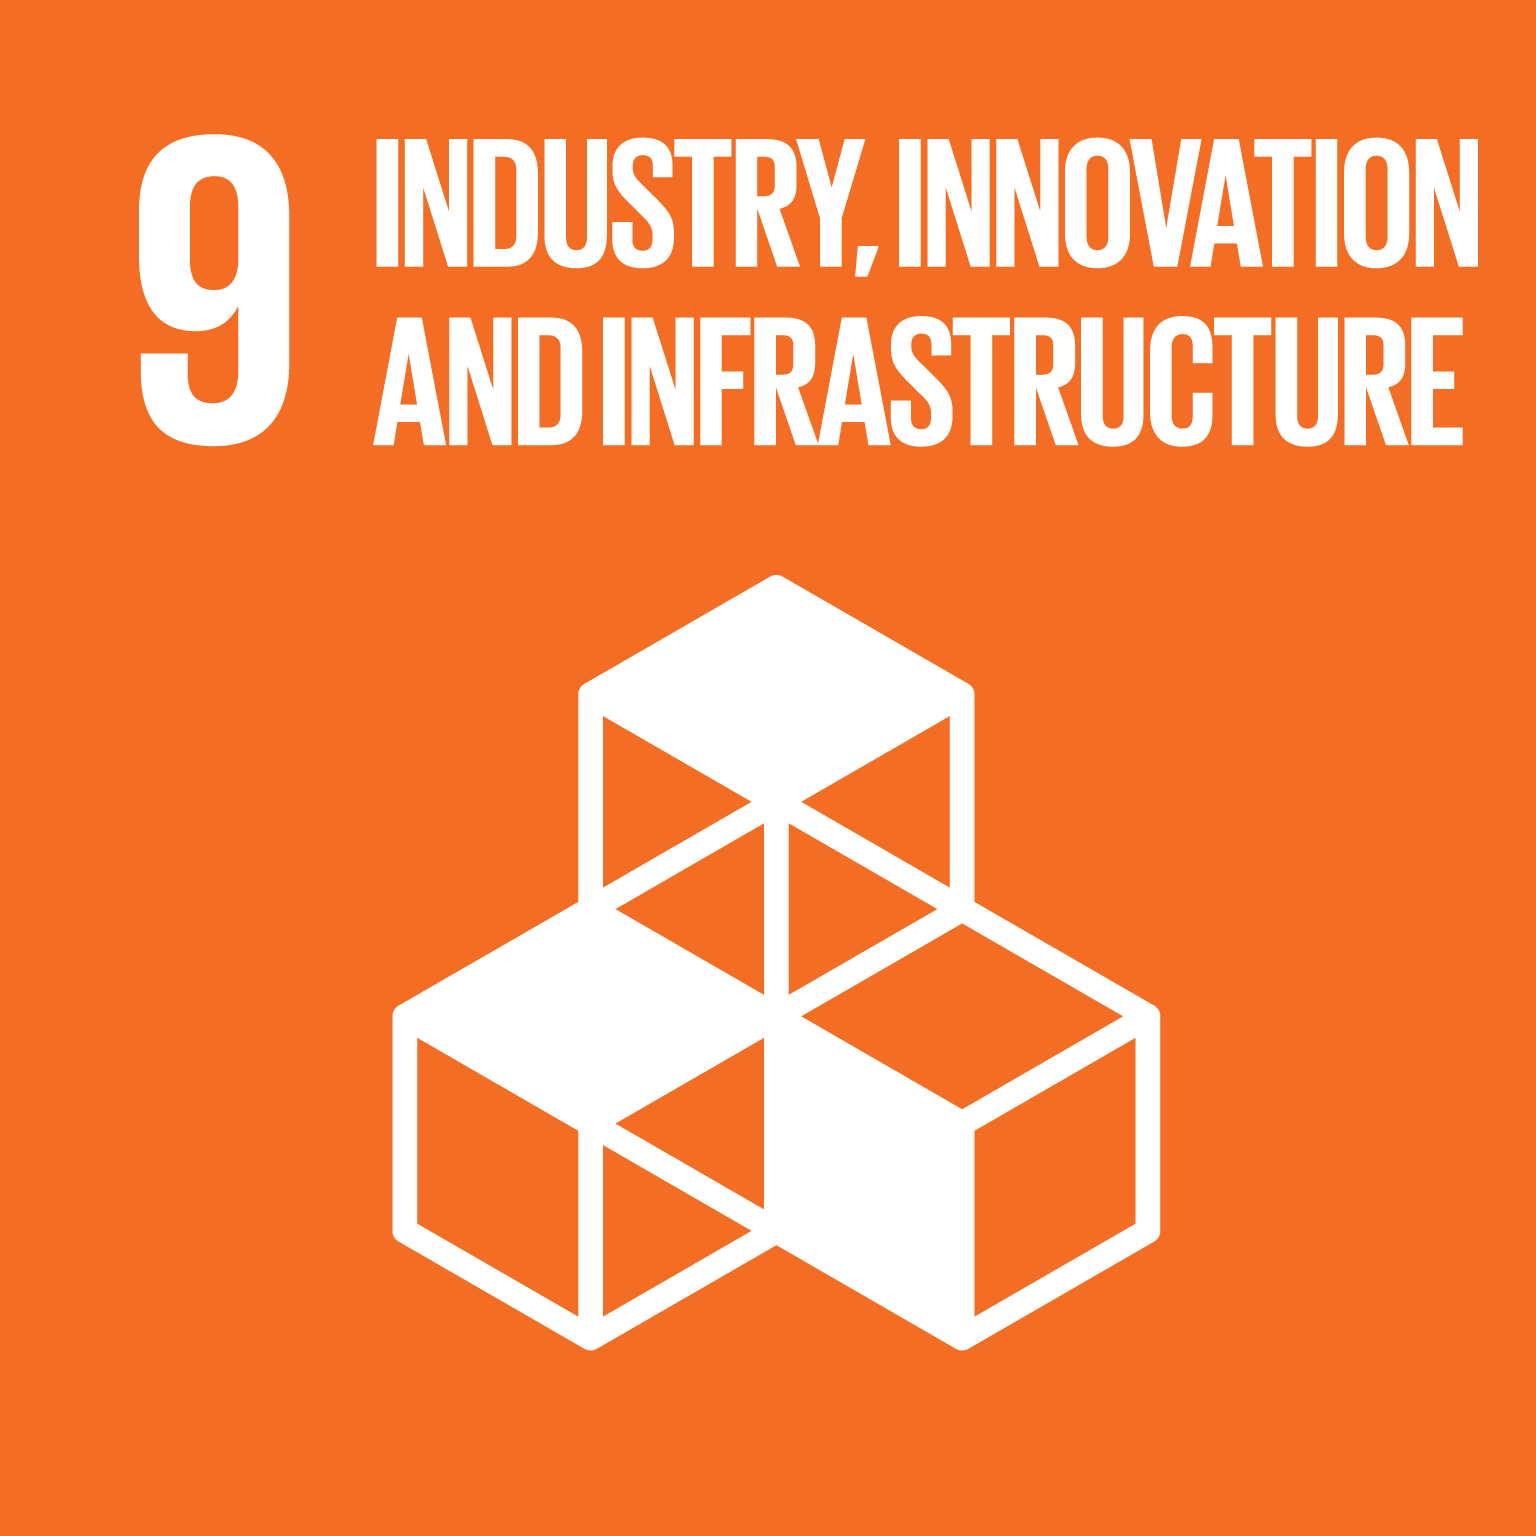 09 Industry, Innovation and Infrastructure SDG